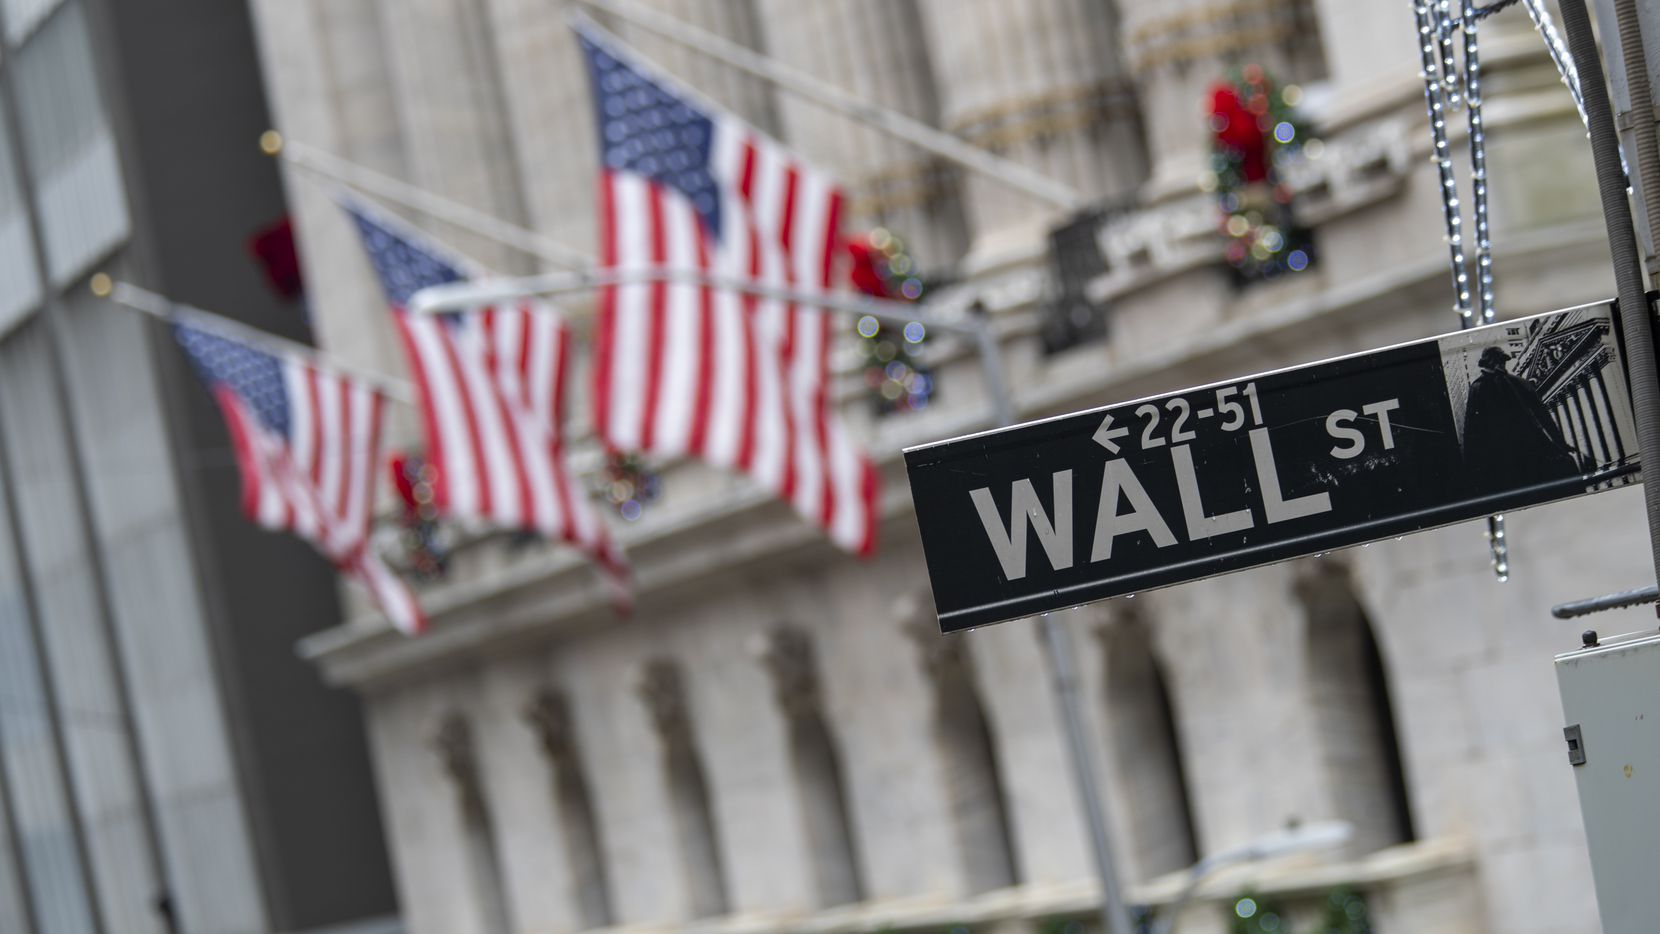 Stocks dropped 10% in early trading Monday, March 16,  on Wall Street as huge swaths of the economy come closer to shutting down, from airlines to restaurants.